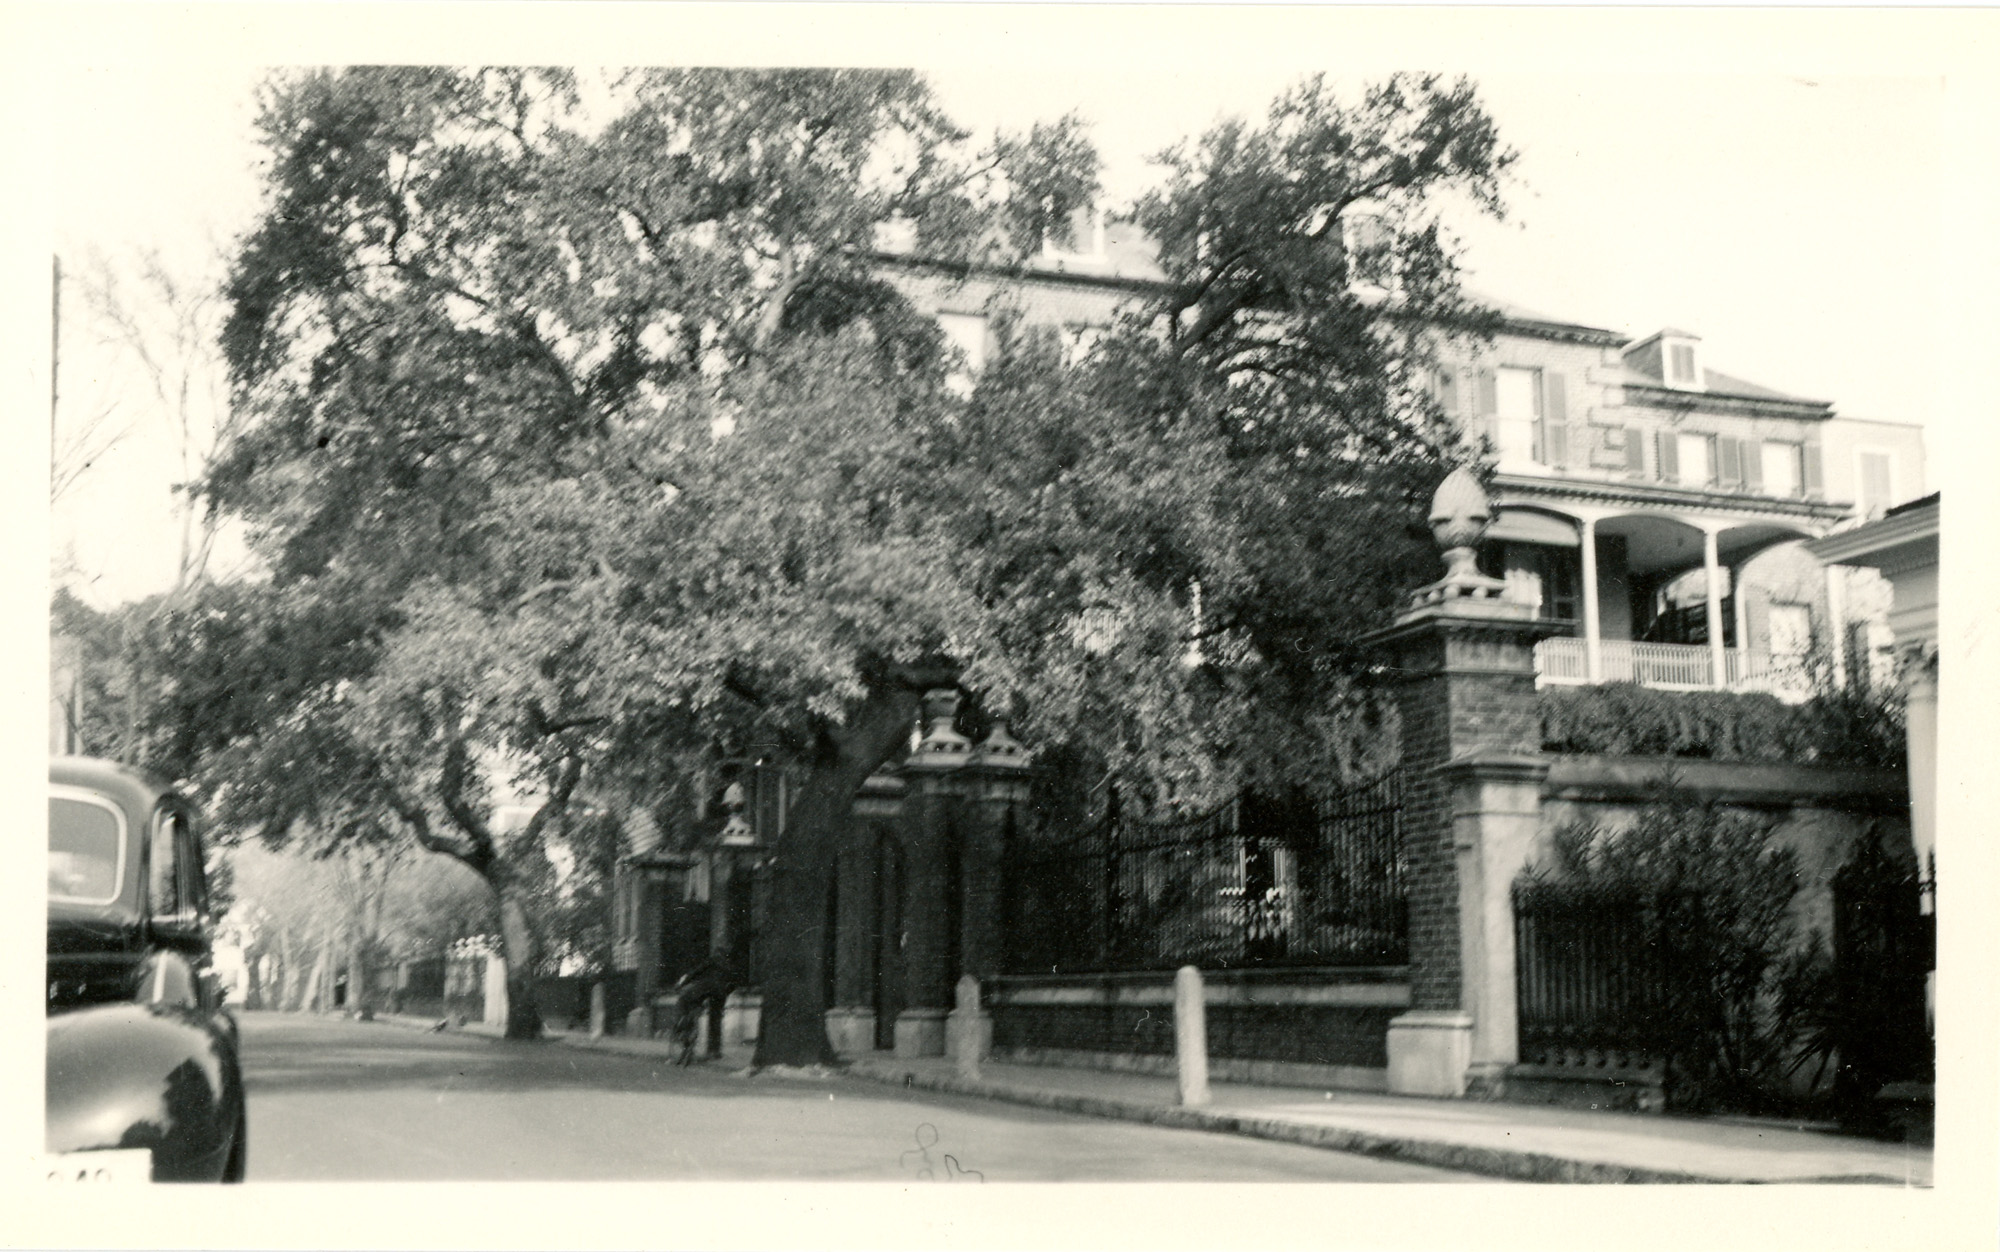 View of Legare Street and the Pineapple Gate House